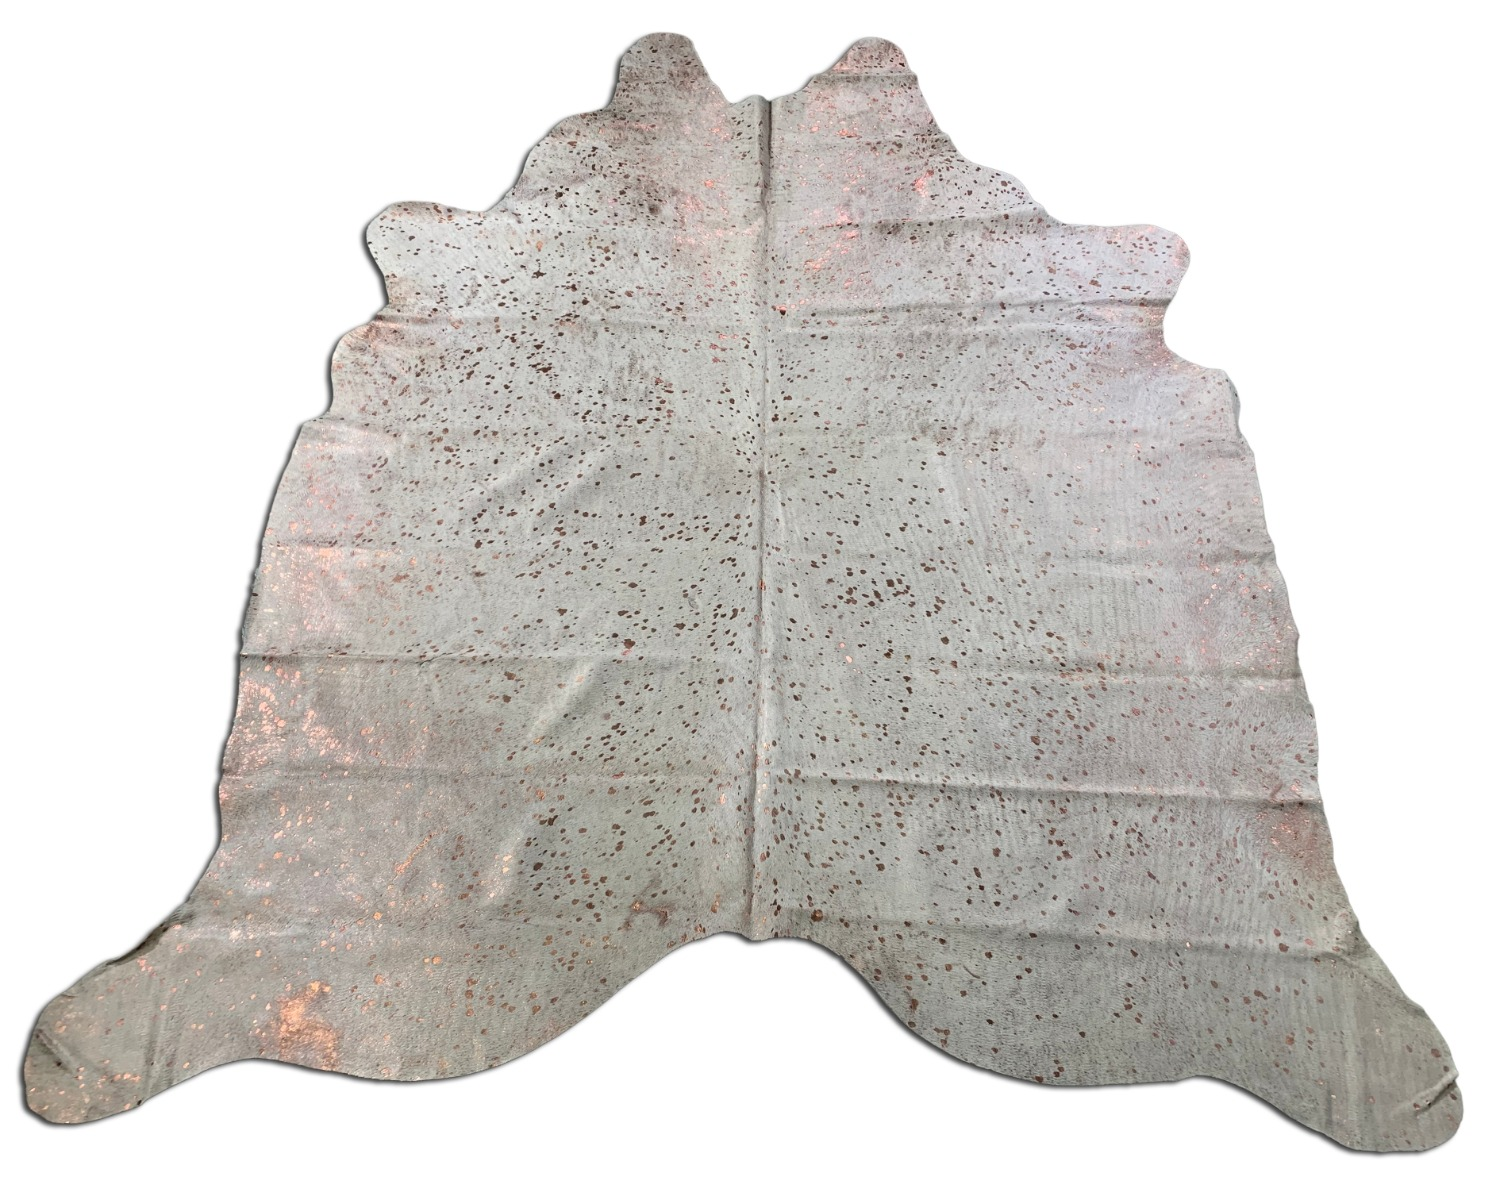 A-1340 Rose Gold Metallic Cowhide Rug Size: 7 1/4' X 7'